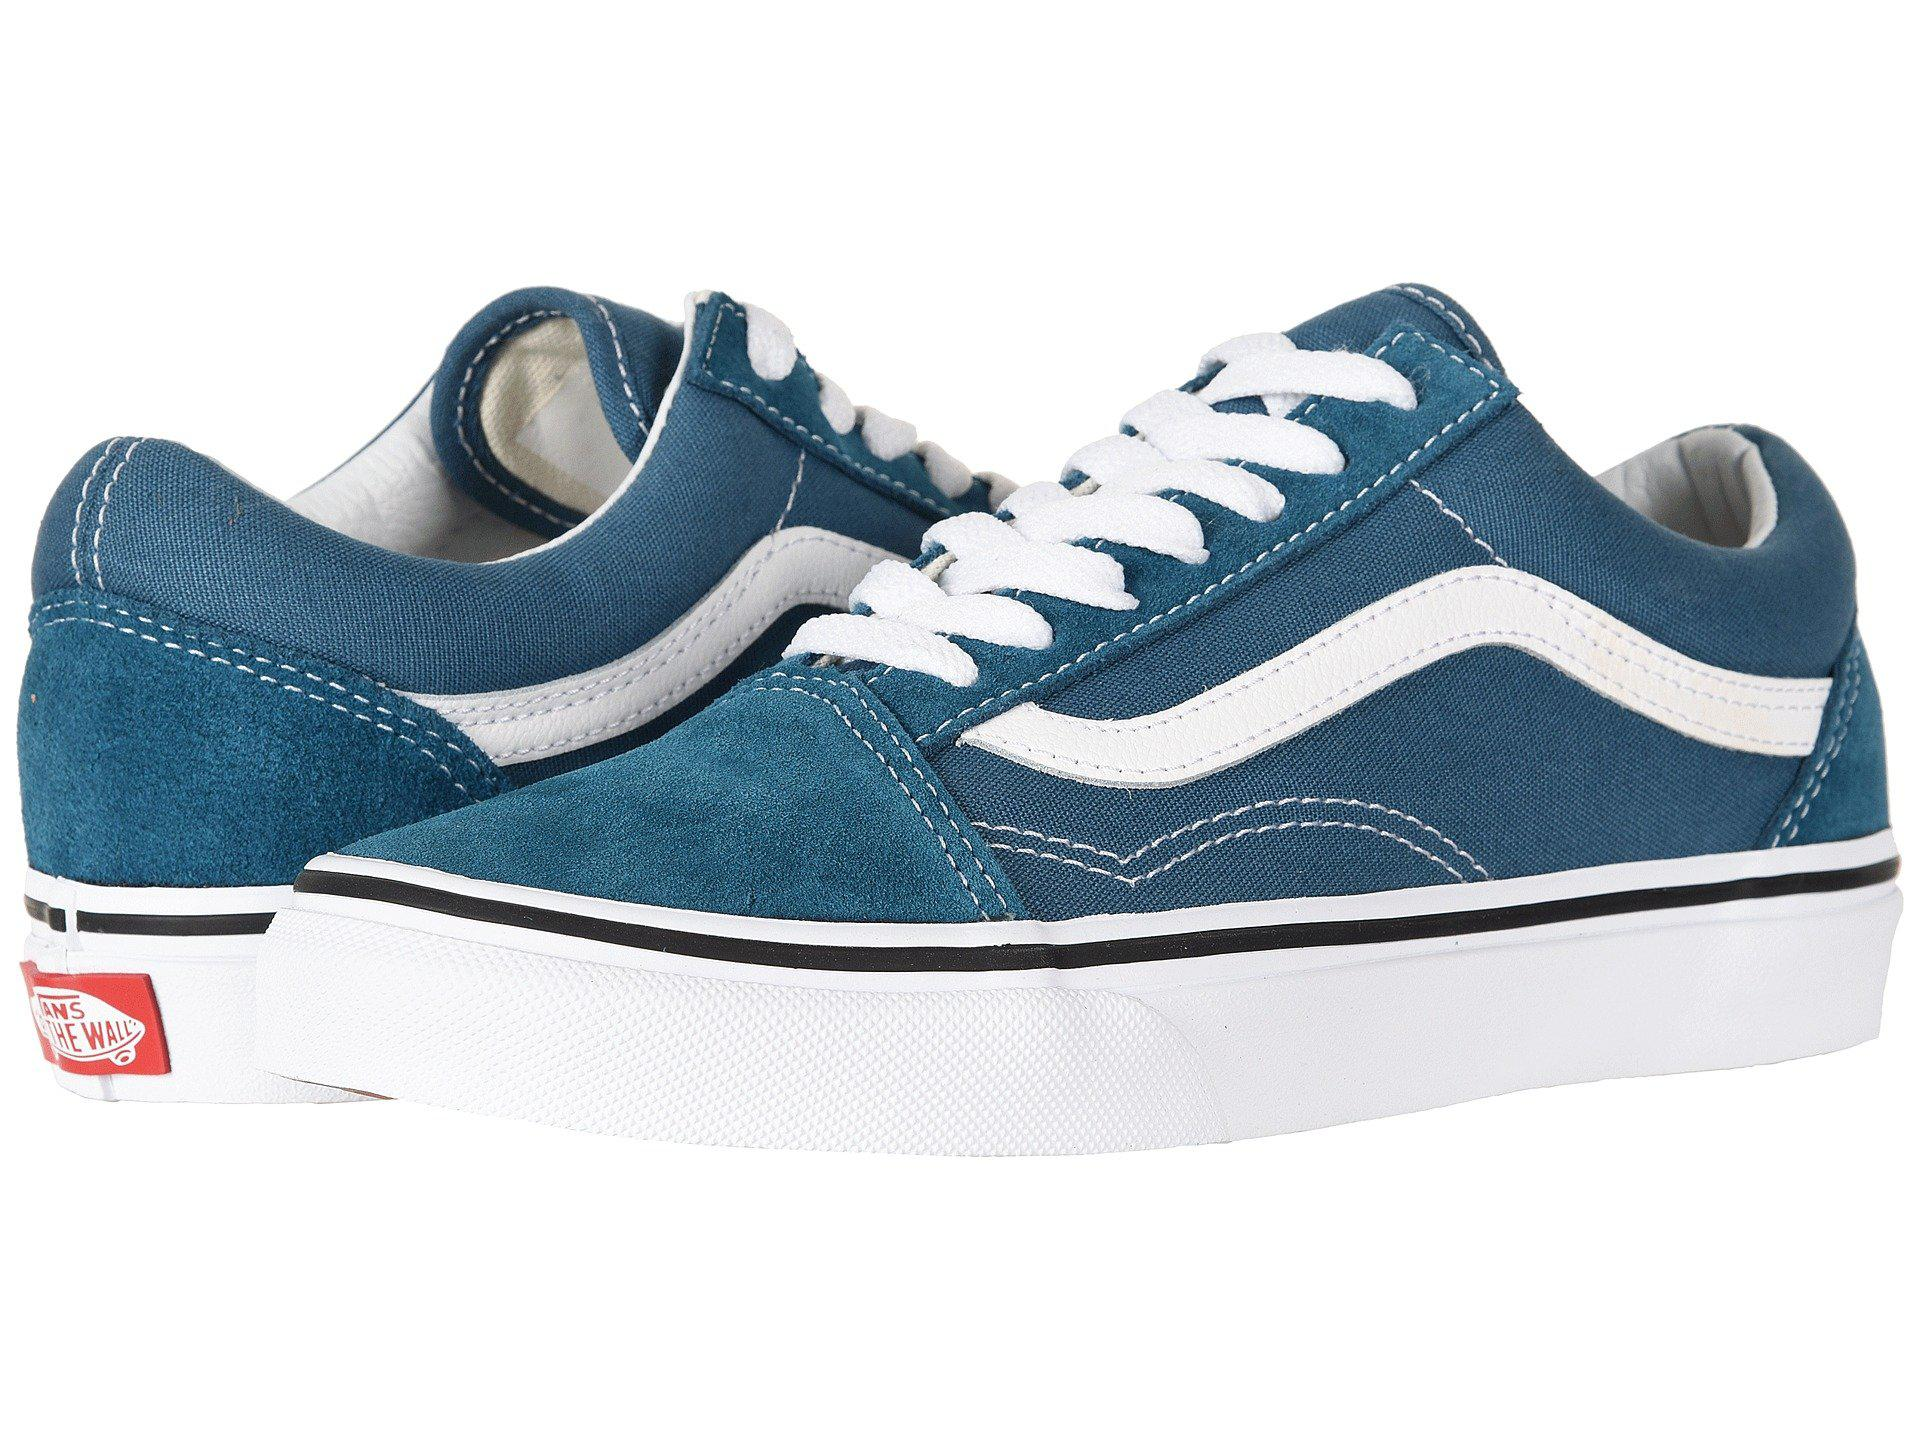 f6a429e51e Lyst - Vans Old Skooltm ((pig Suede) Stormy Weather true White ...